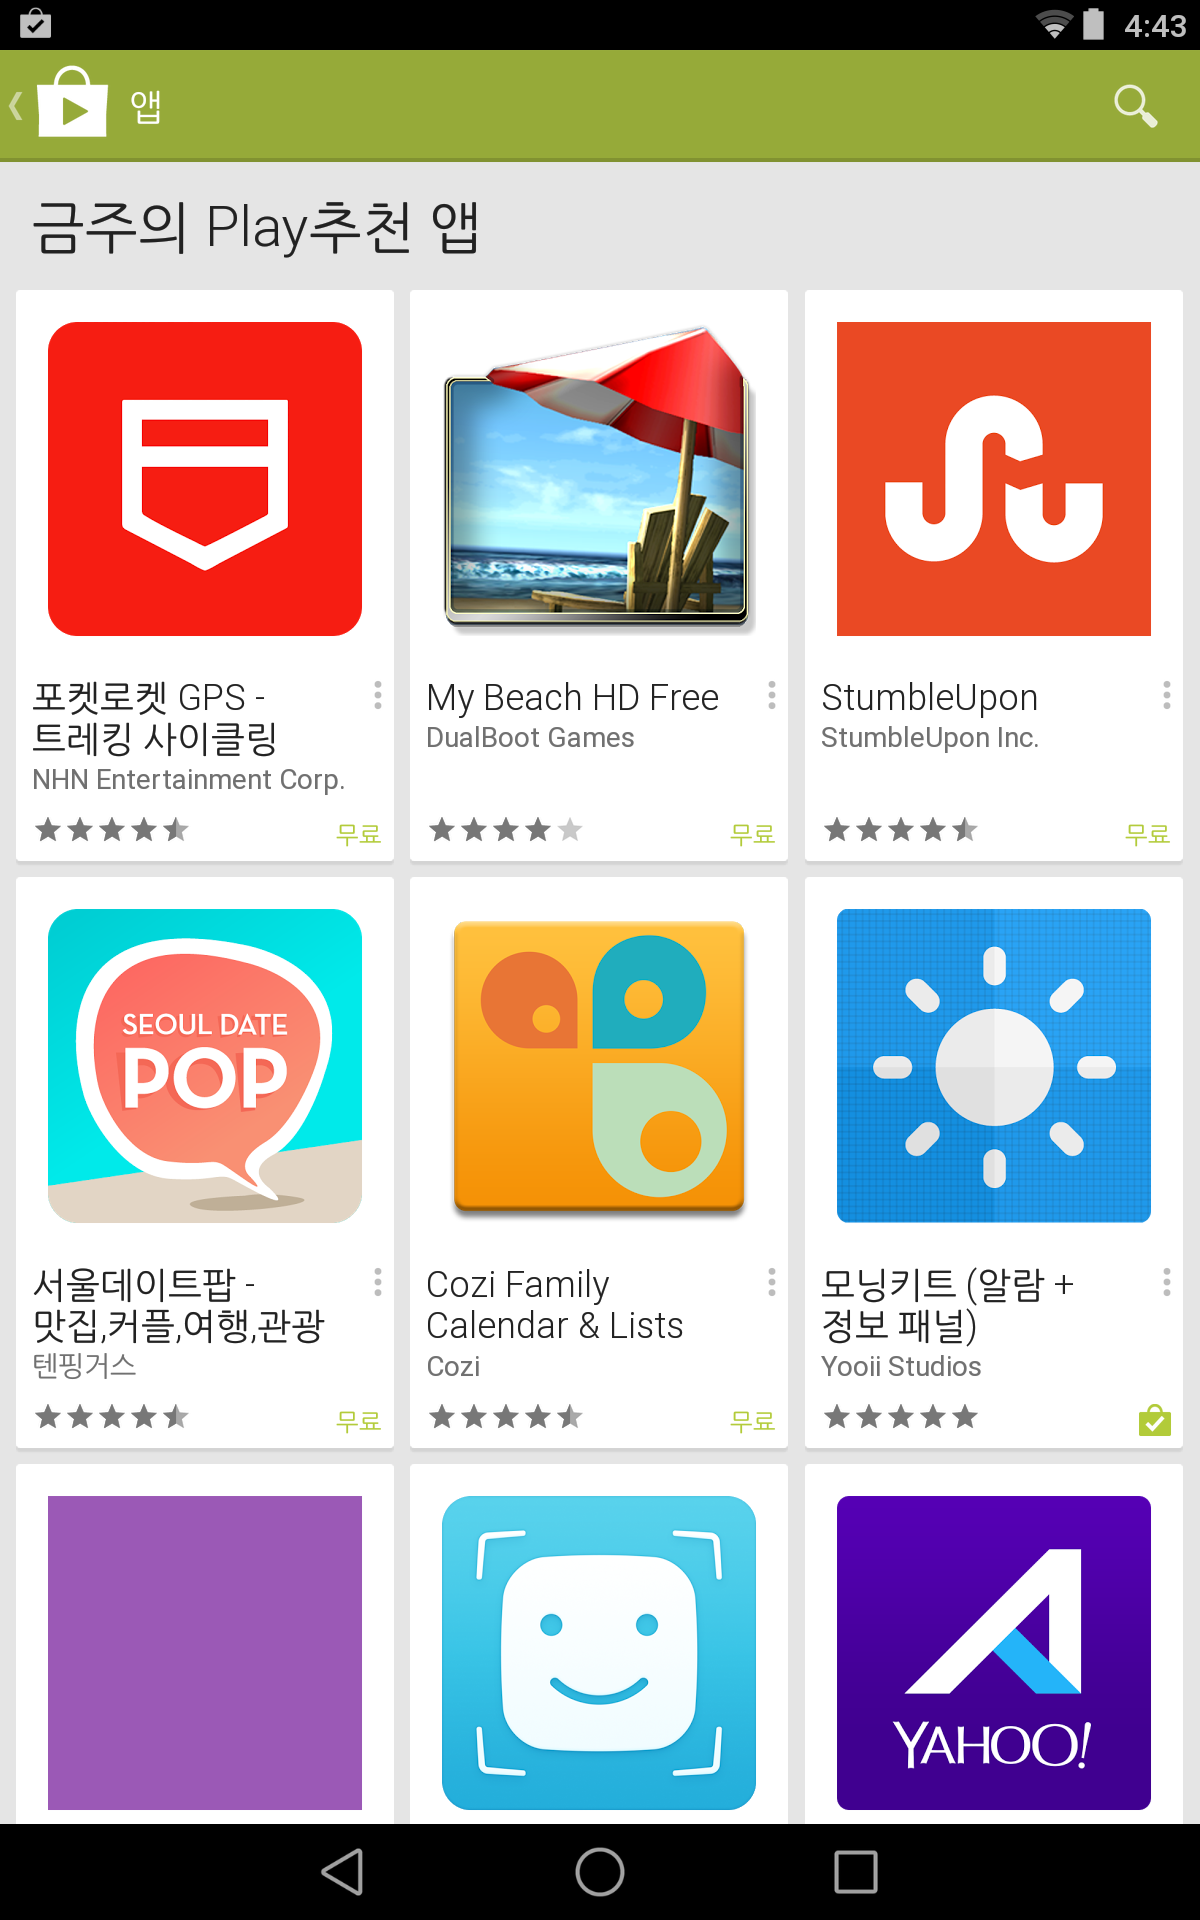 [Android] 모닝키트 구글 플레이(한국) 출시!